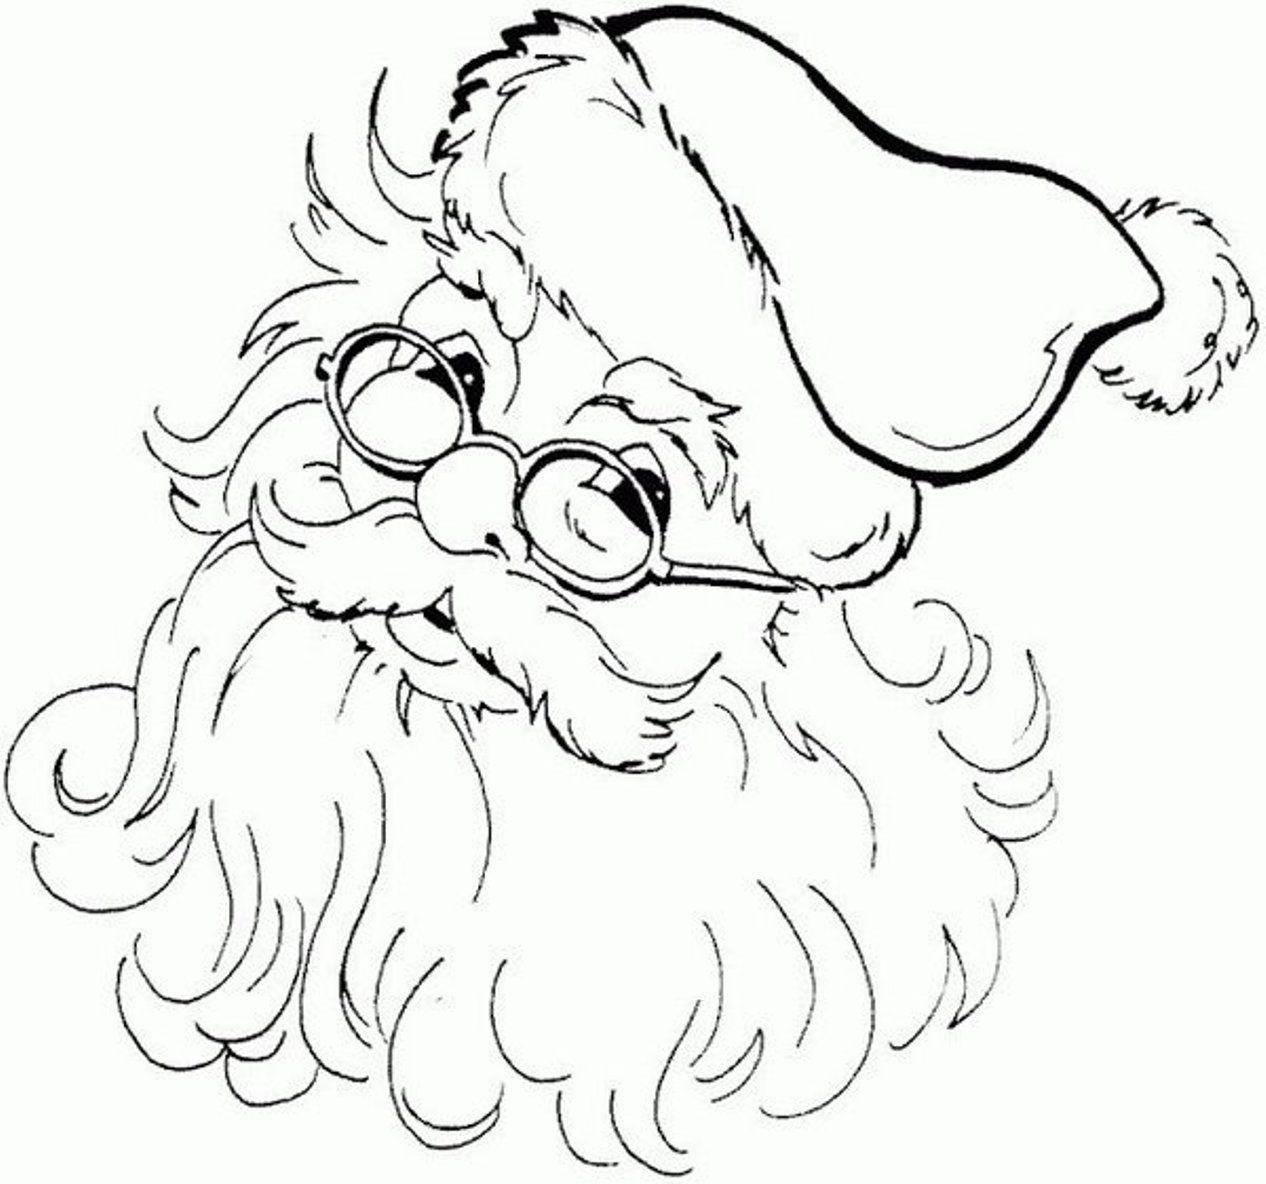 Images For > Santa Claus Face Black And White | silhouettes ...